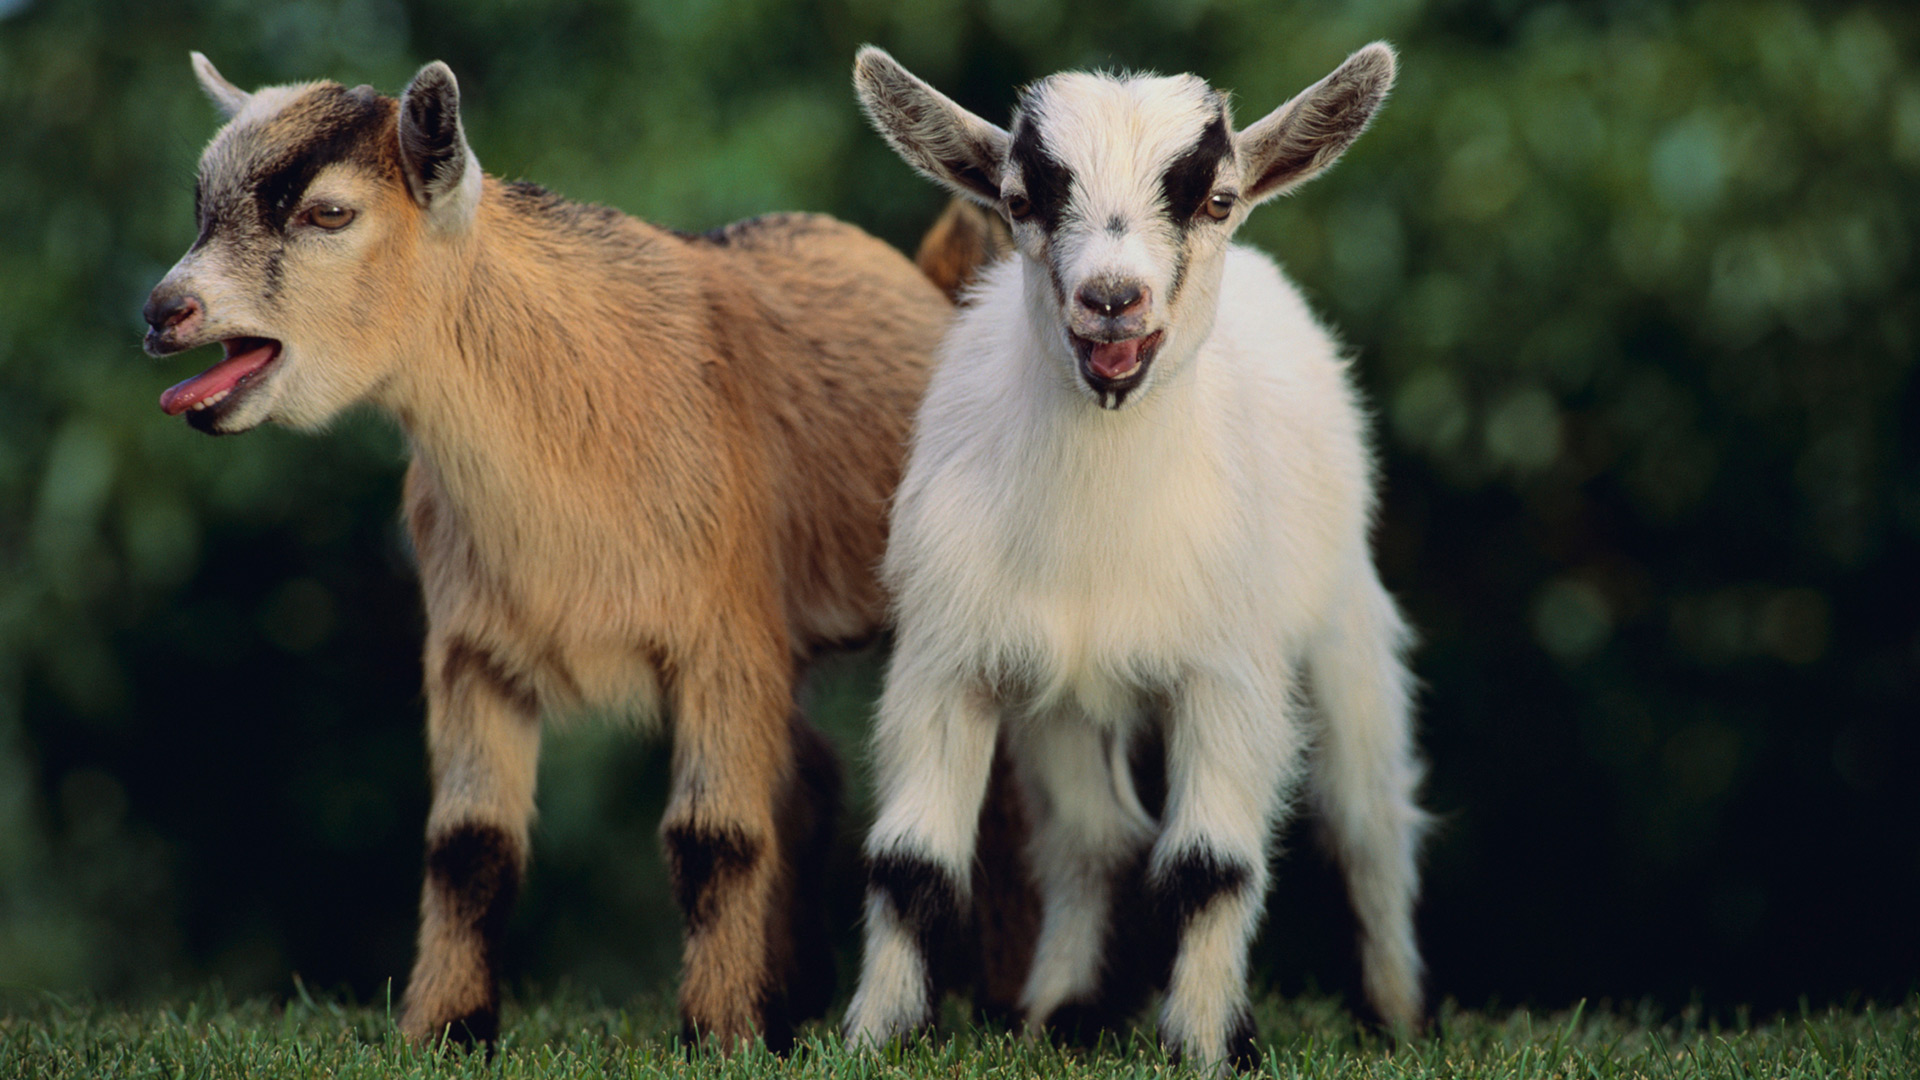 Pygmy goats | Sheknows.com